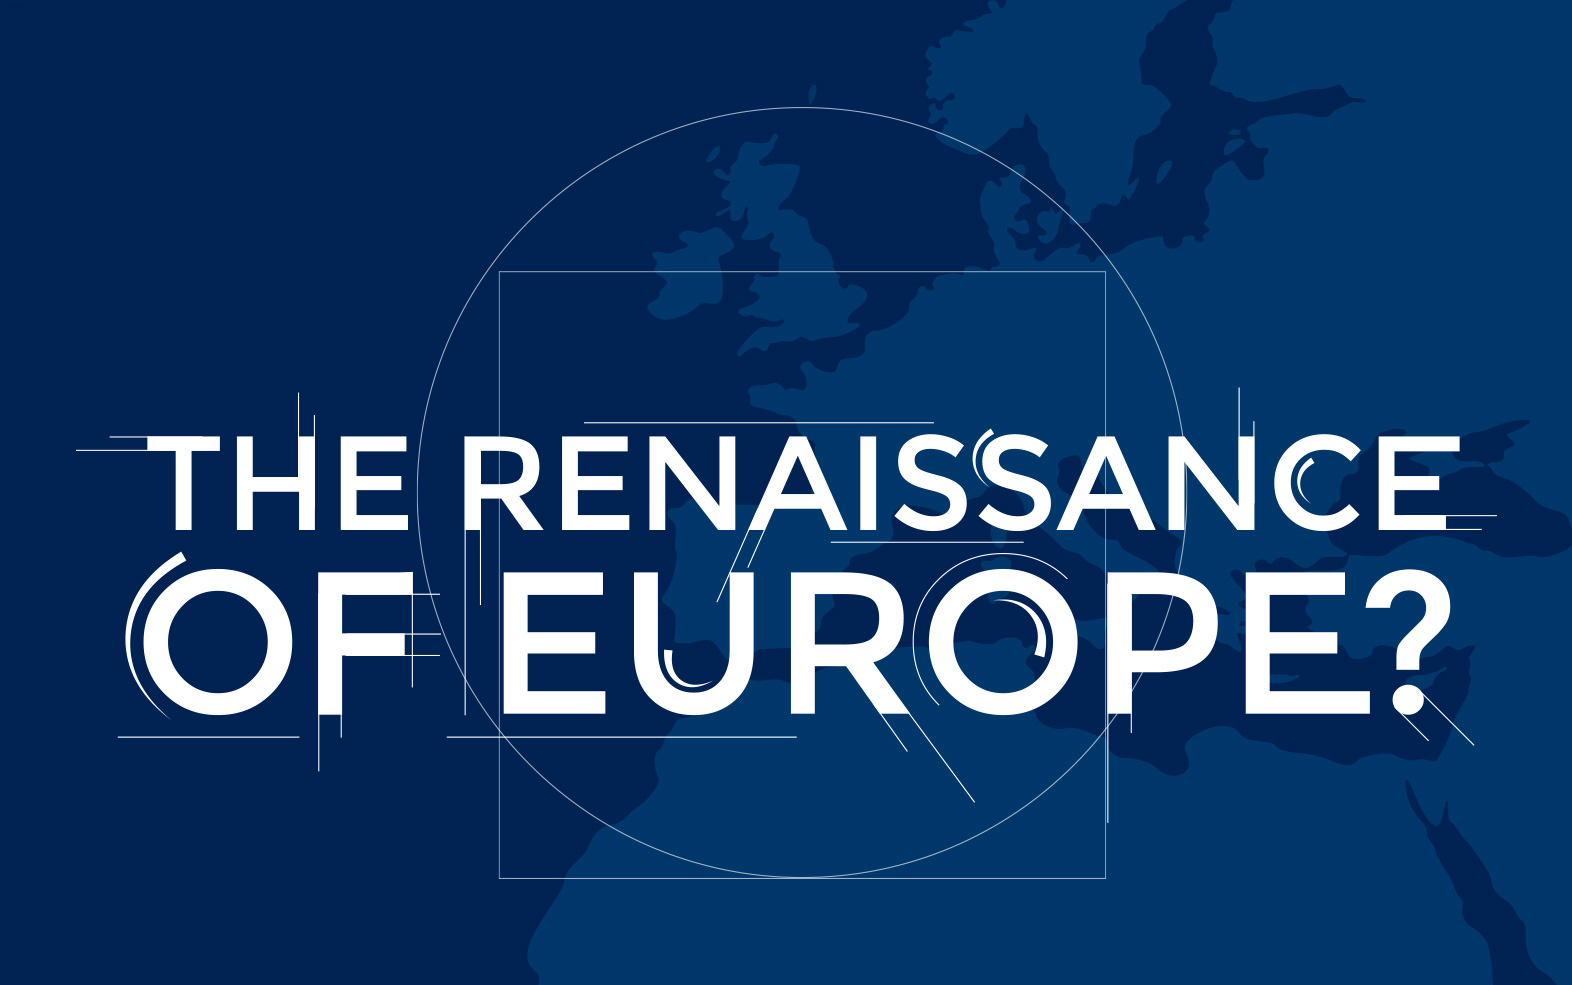 The Renaissance of Europe